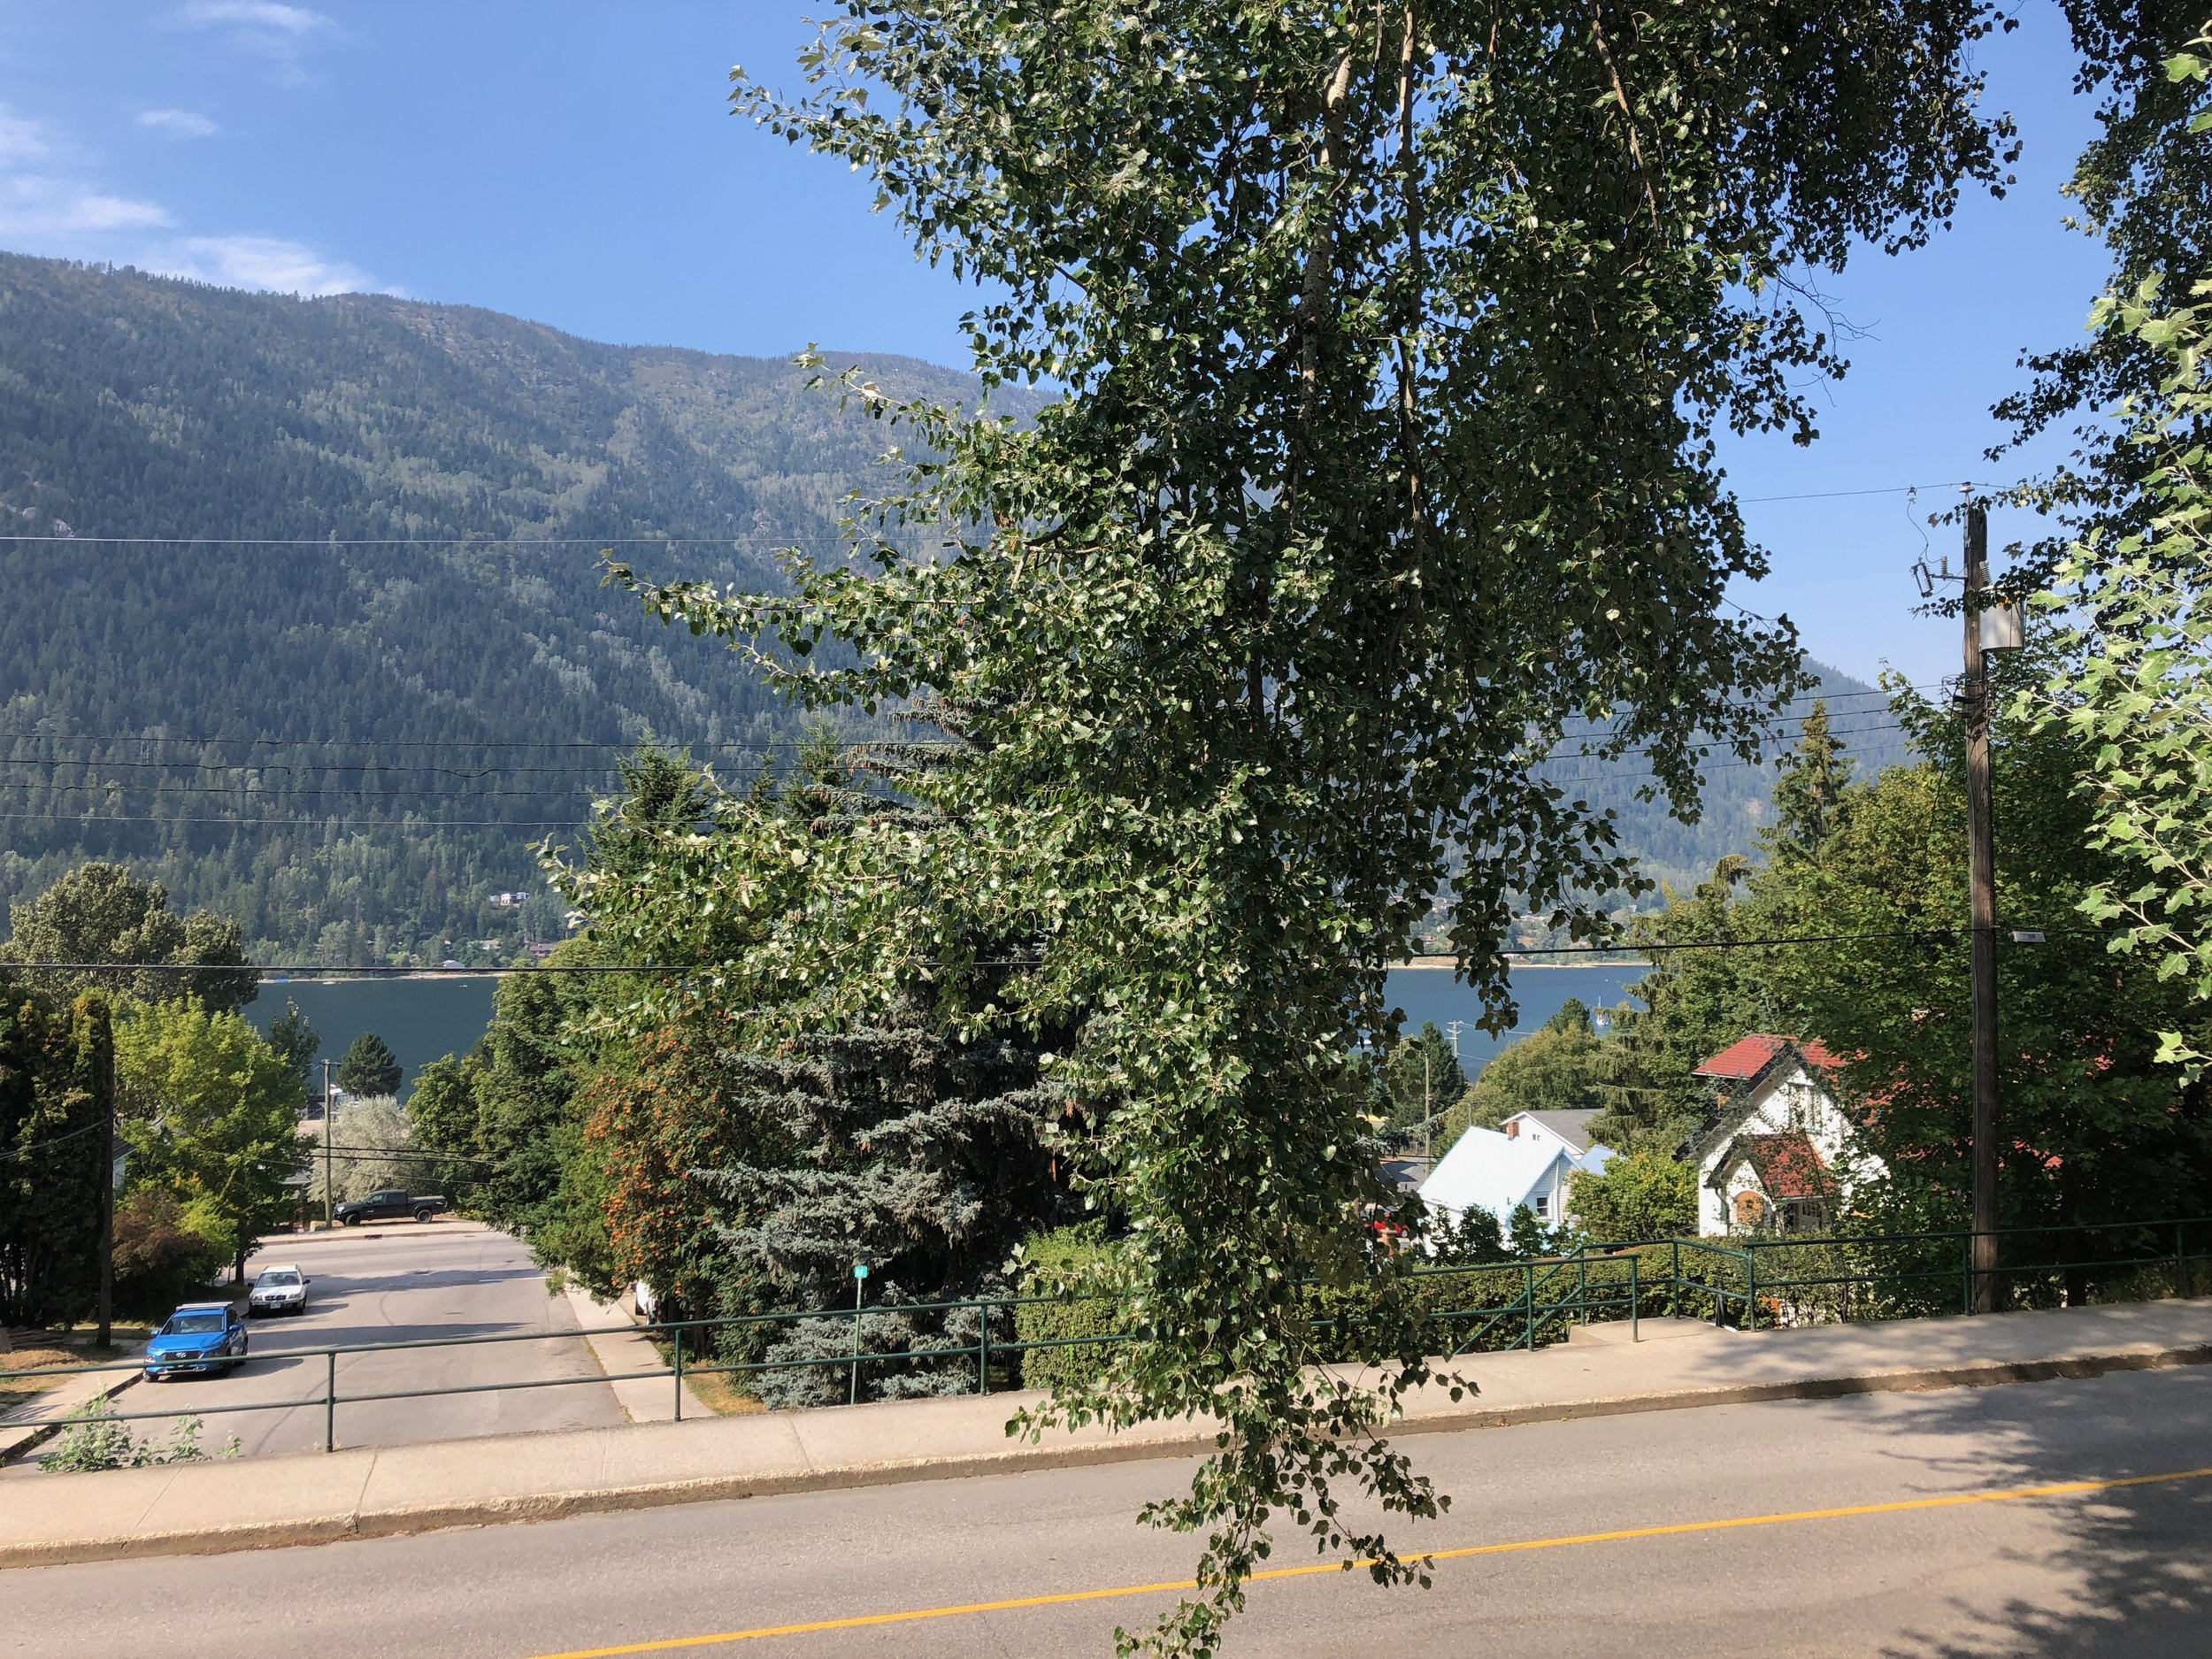 The view from the Nelson City Campground